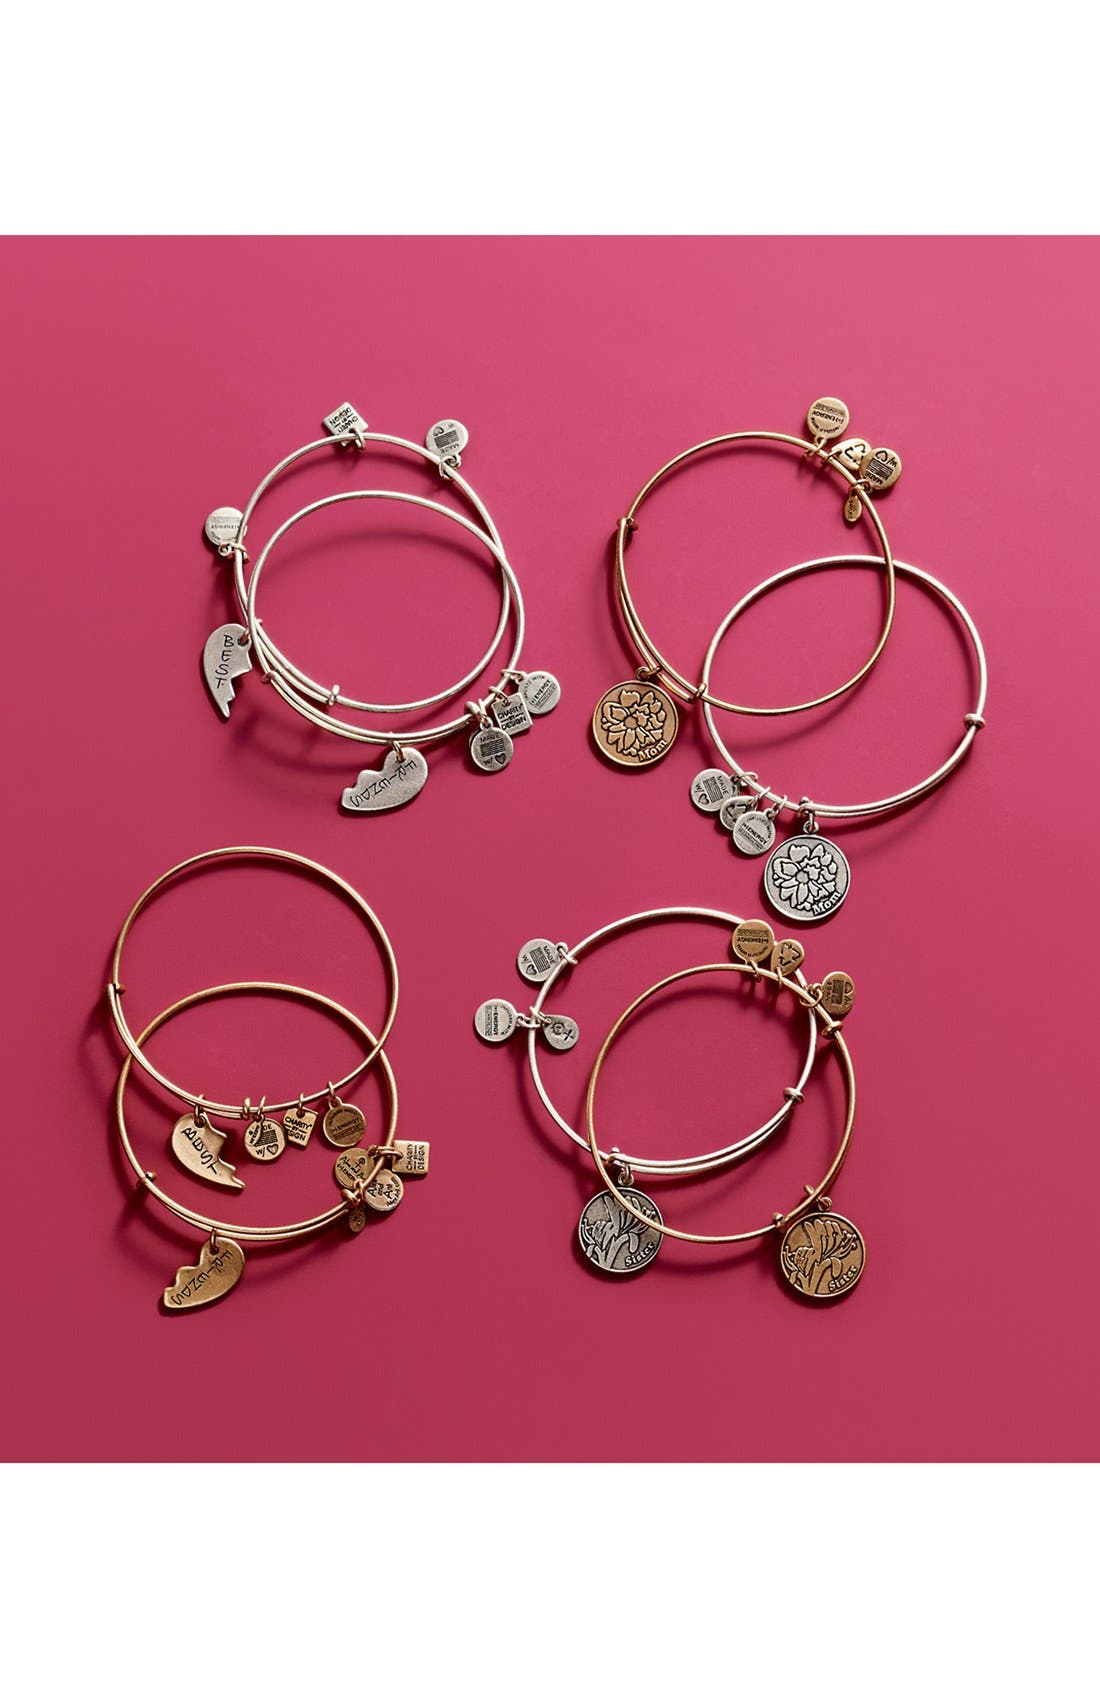 'Charity by Design - Best Friends' Adjustable Wire Bangles,                             Alternate thumbnail 4, color,                             710